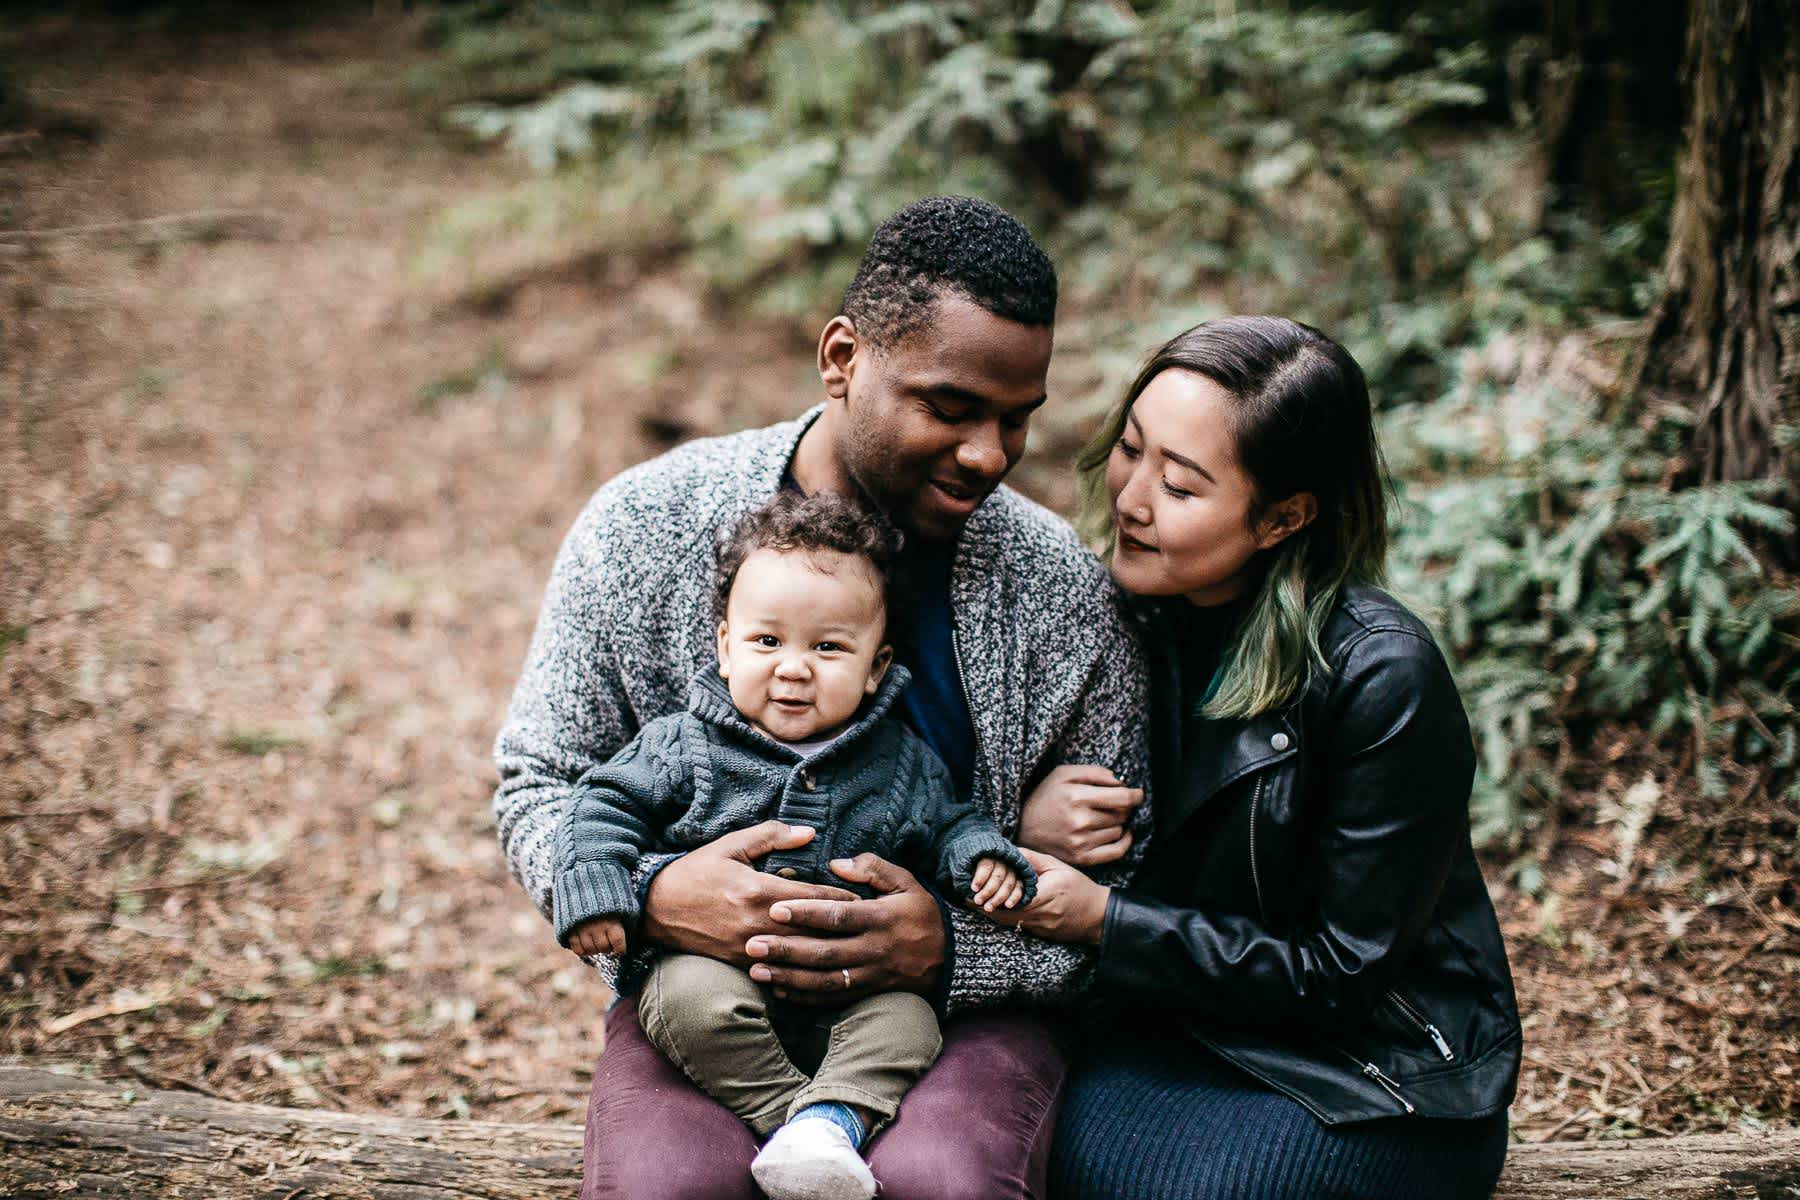 oakland-redwoods-urban-family-session-17